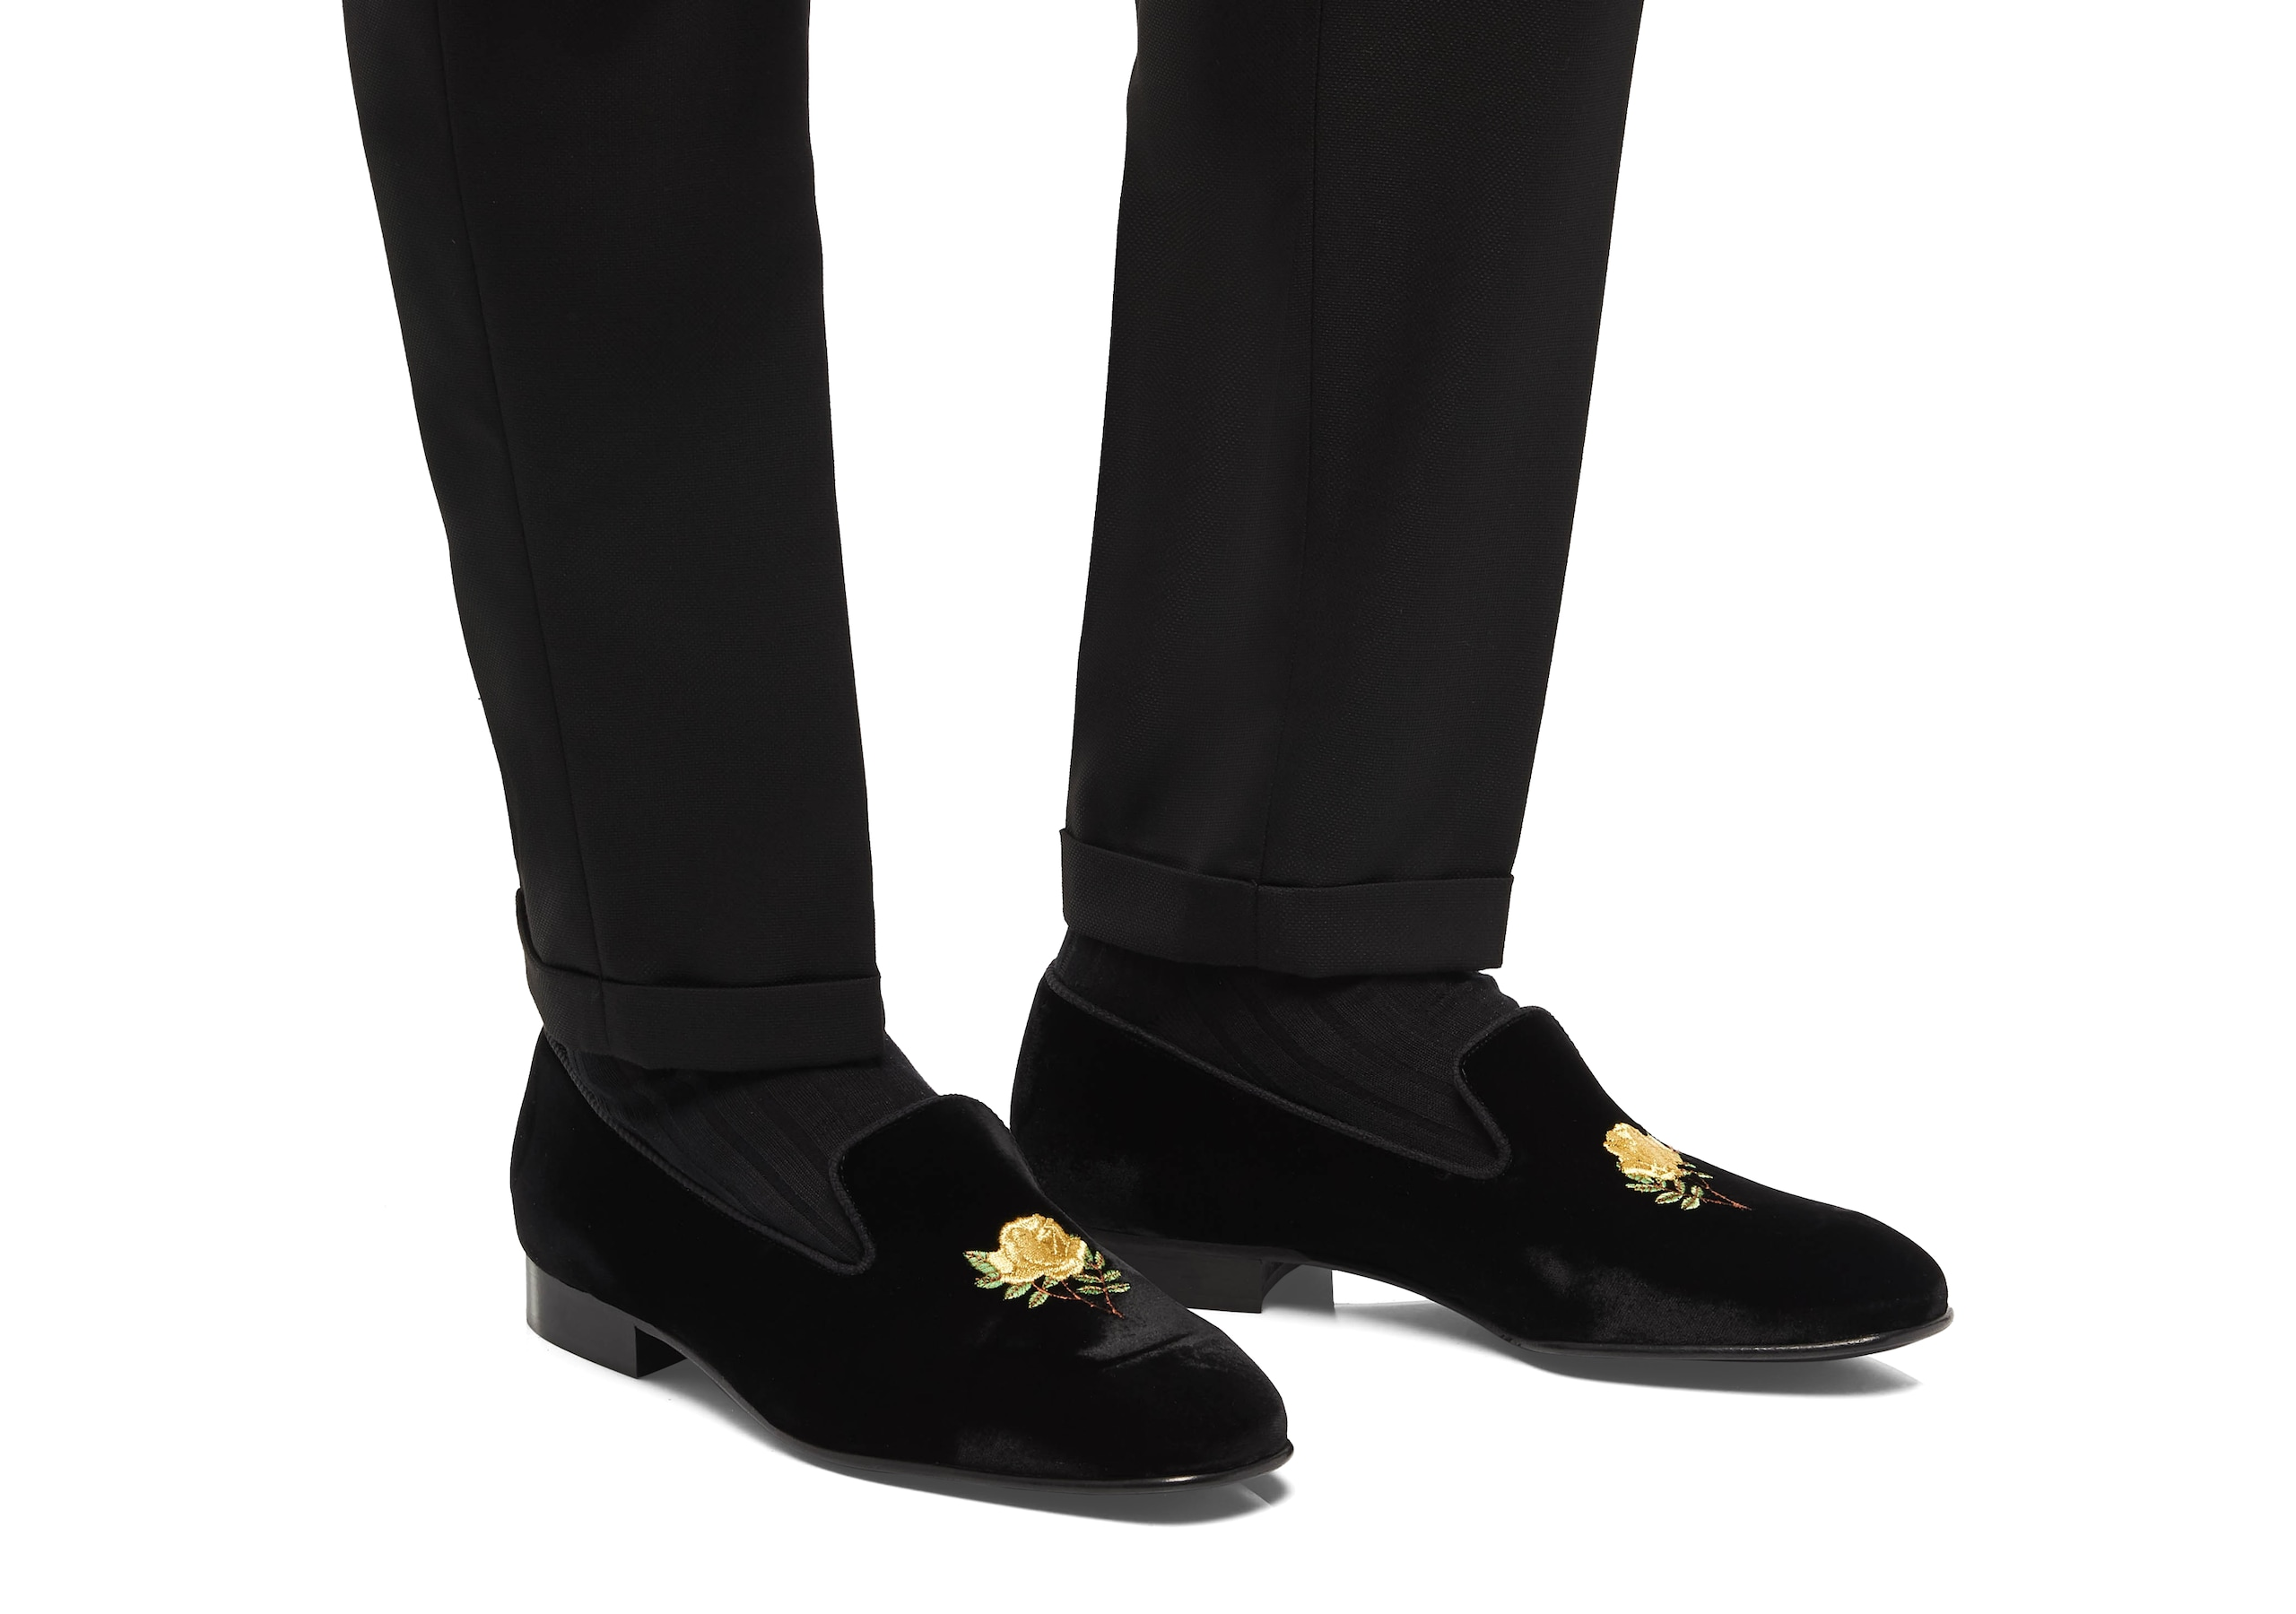 Sovereign rose 2 Church's Velvet Rose Loafer Black Black